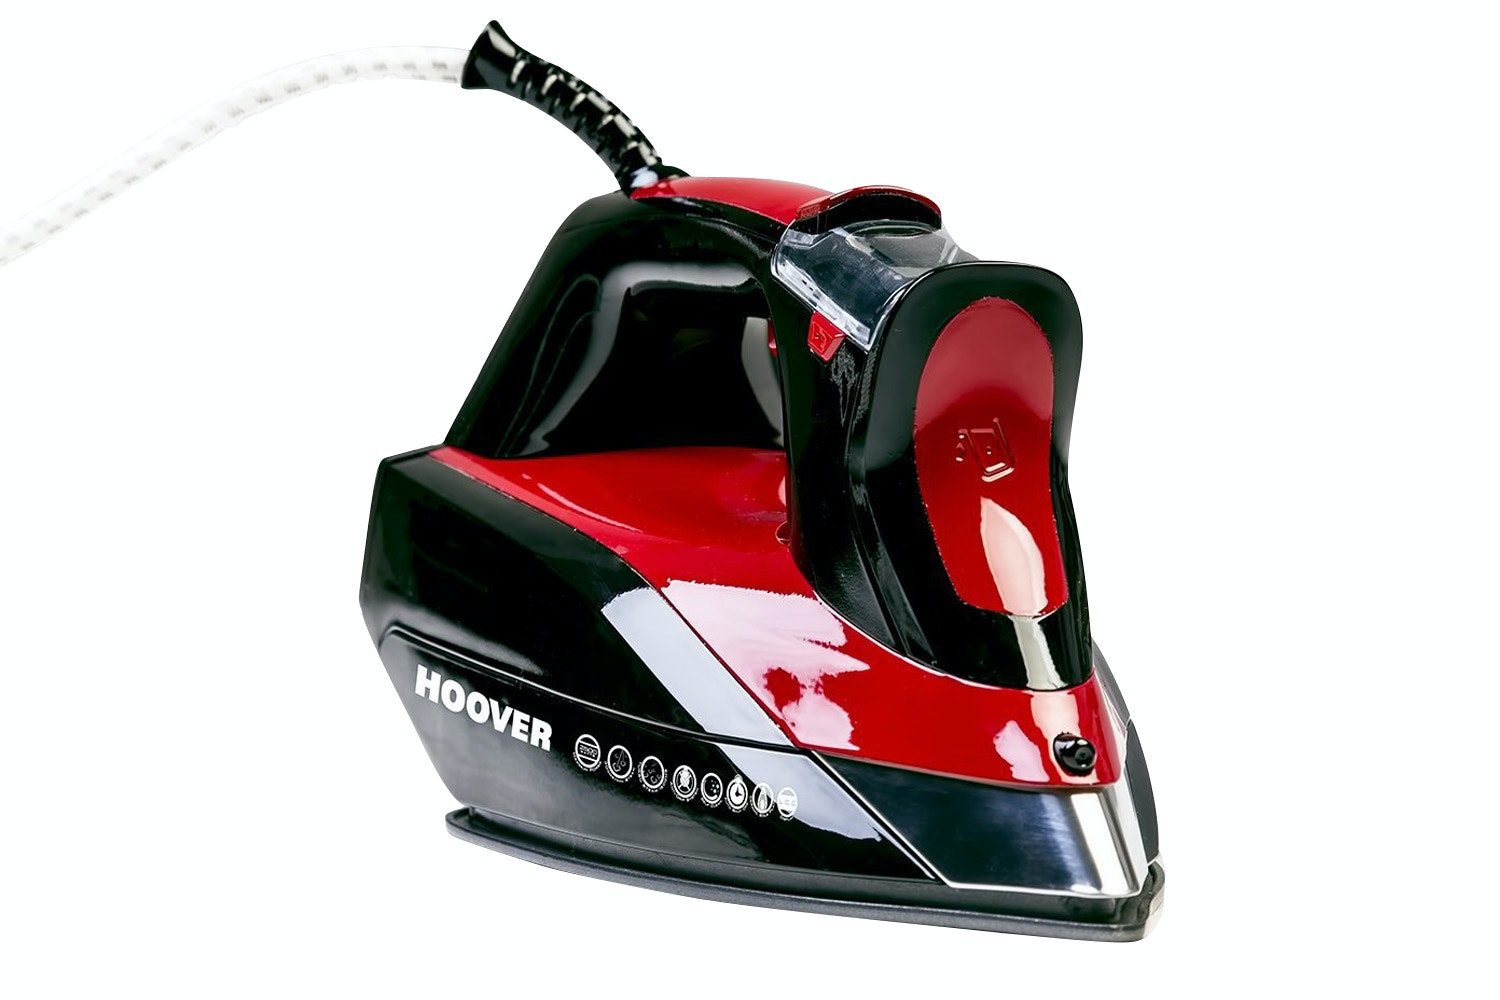 Hoover Steam 2500W Iron | IronJet TID2500C